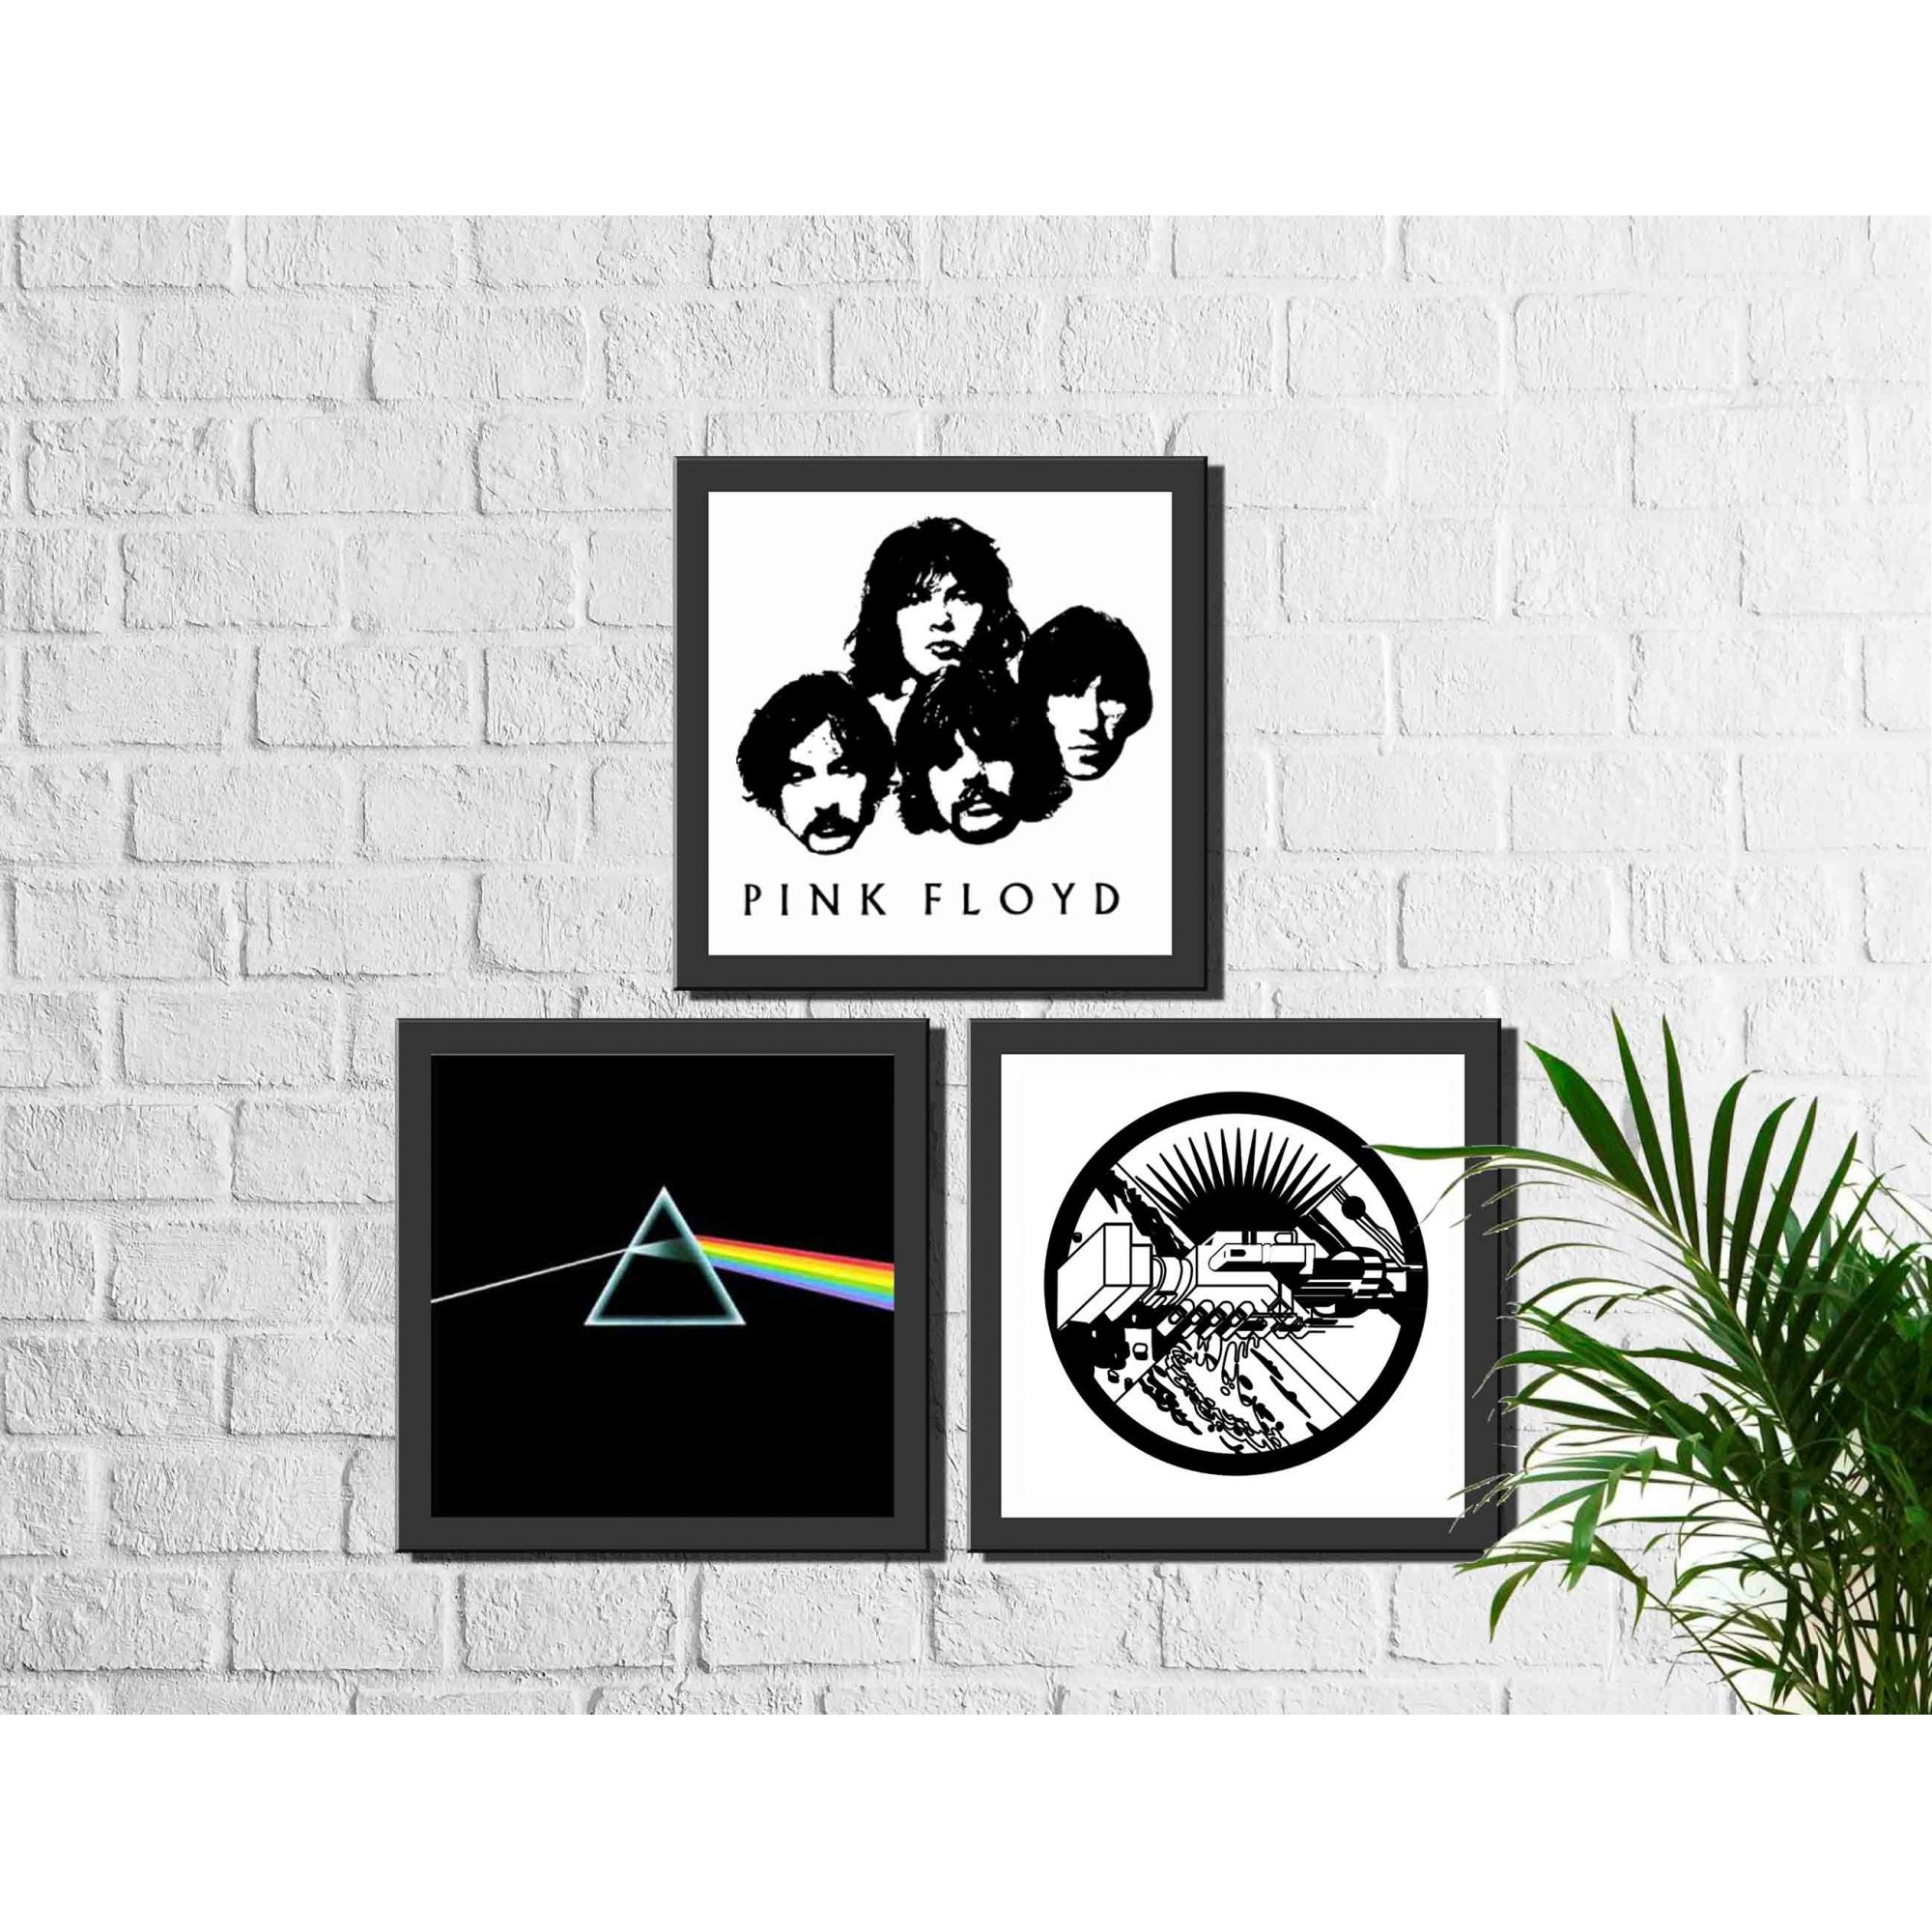 Kit 3 Quadros Decorativos Banda Pink Floyd Rock